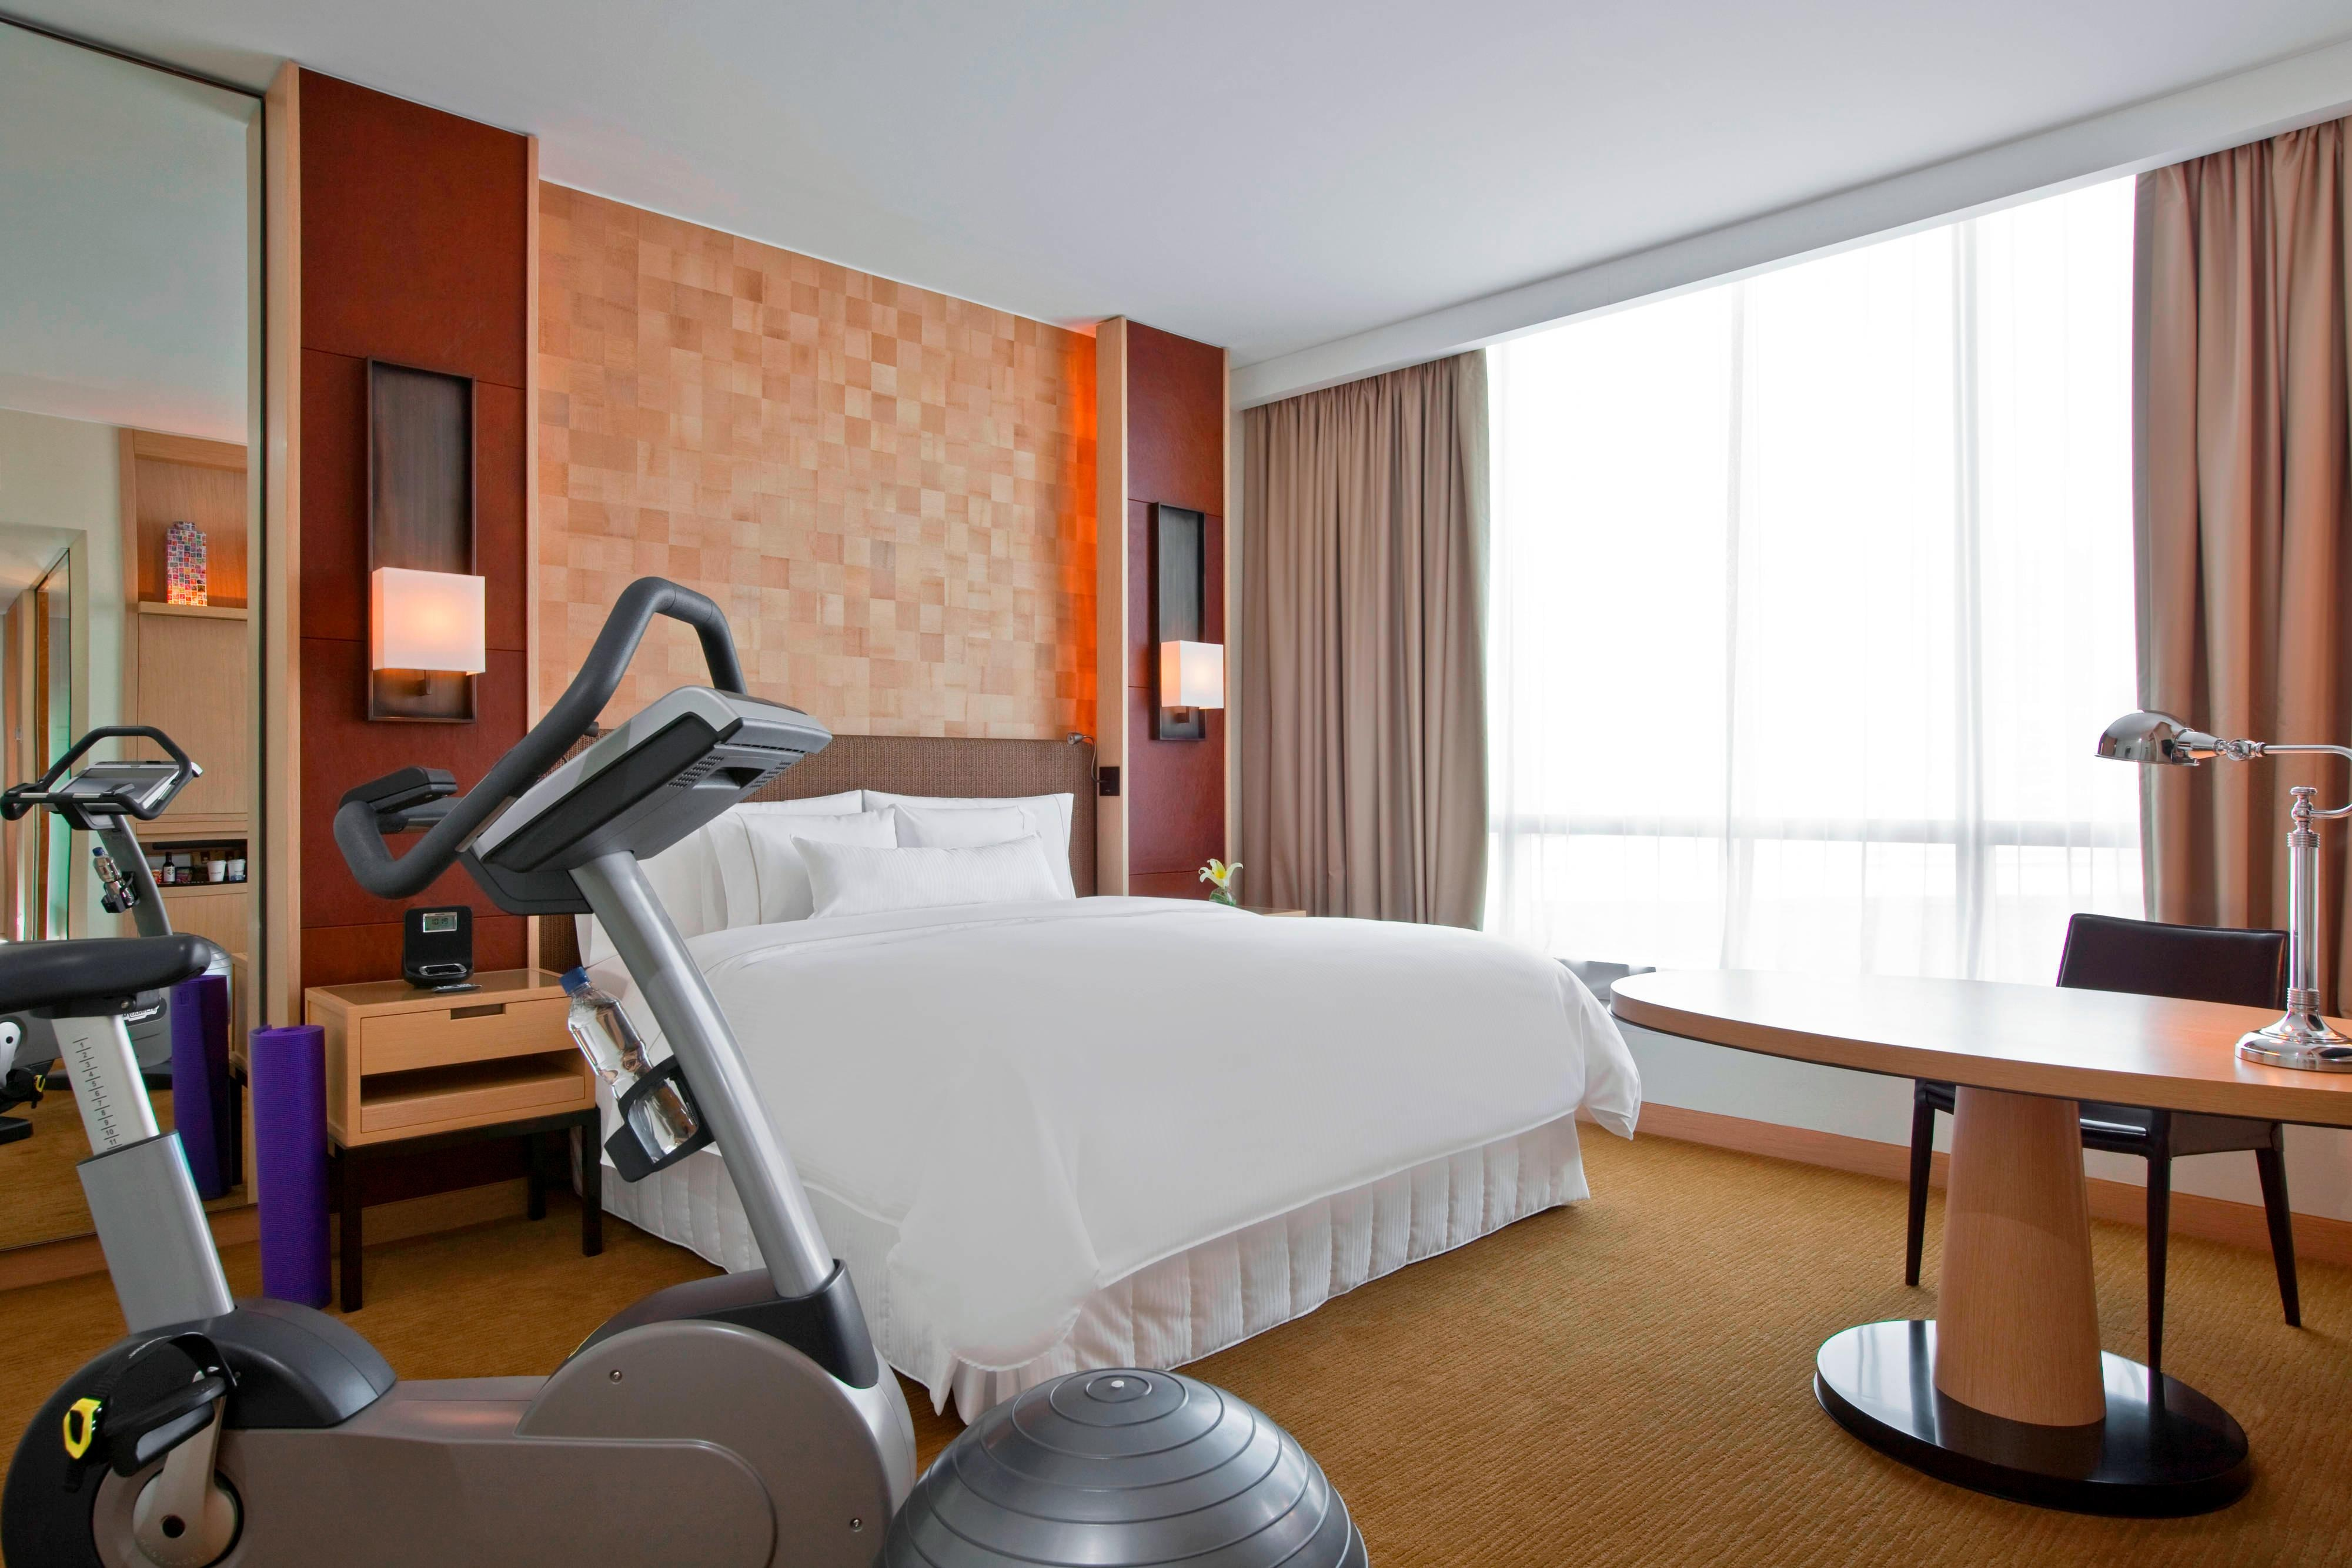 WestinWorkOUT Guest Room